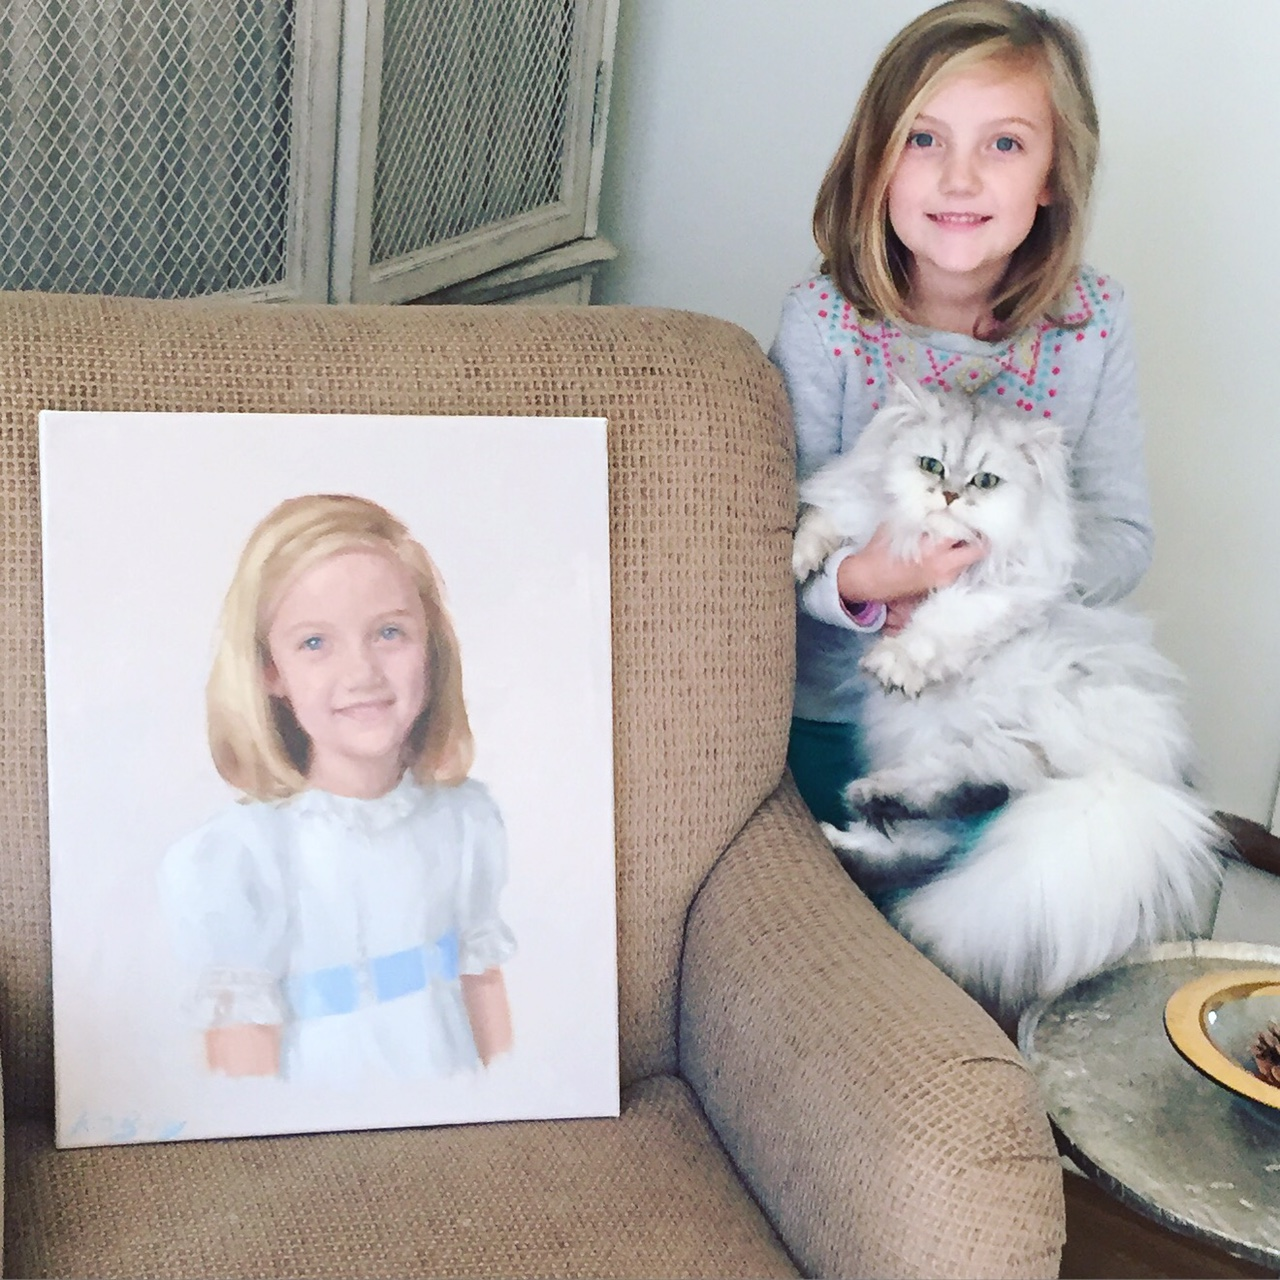 Kennon, her portrait, and Eleanor